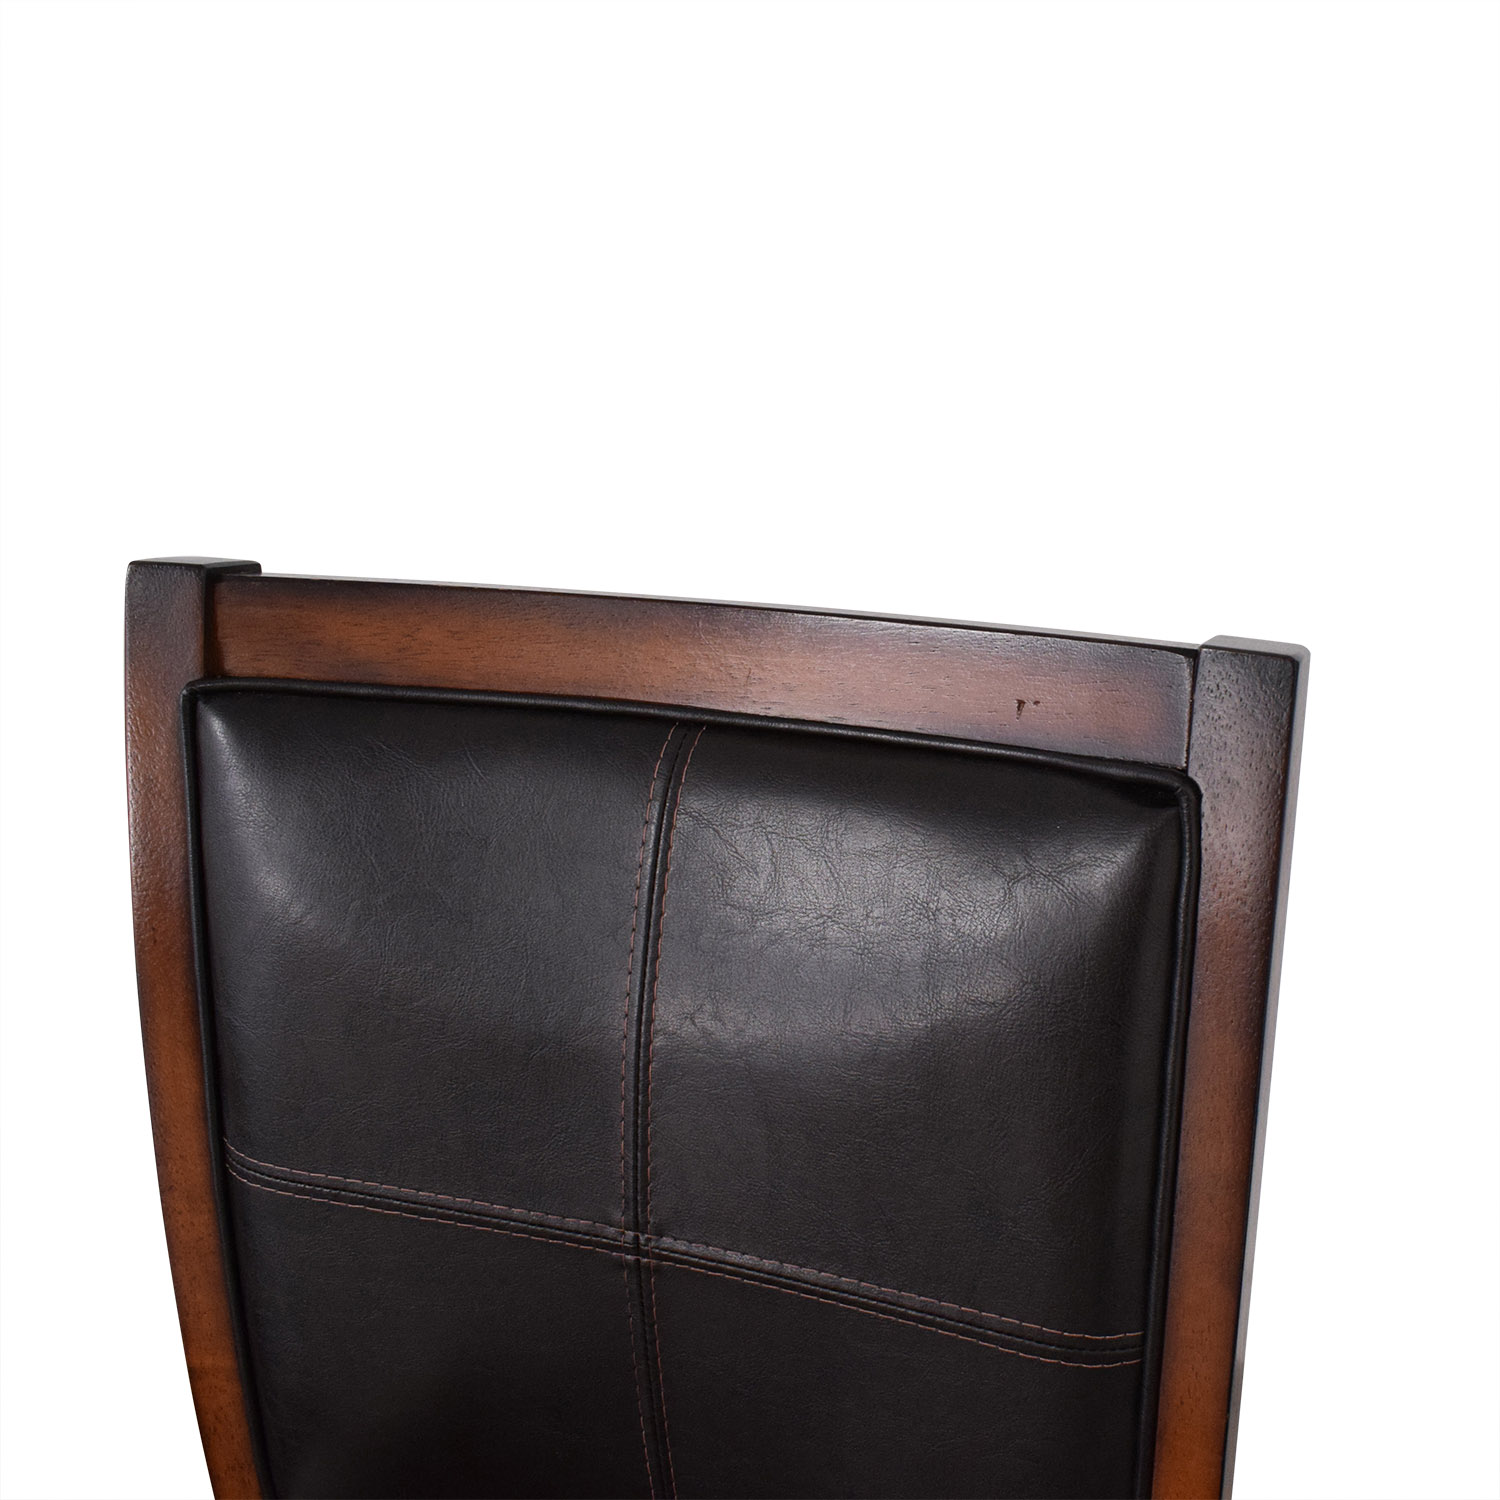 Raymour & Flanigan Raymour & Flanigan Upholstered Dining Chairs brown & black